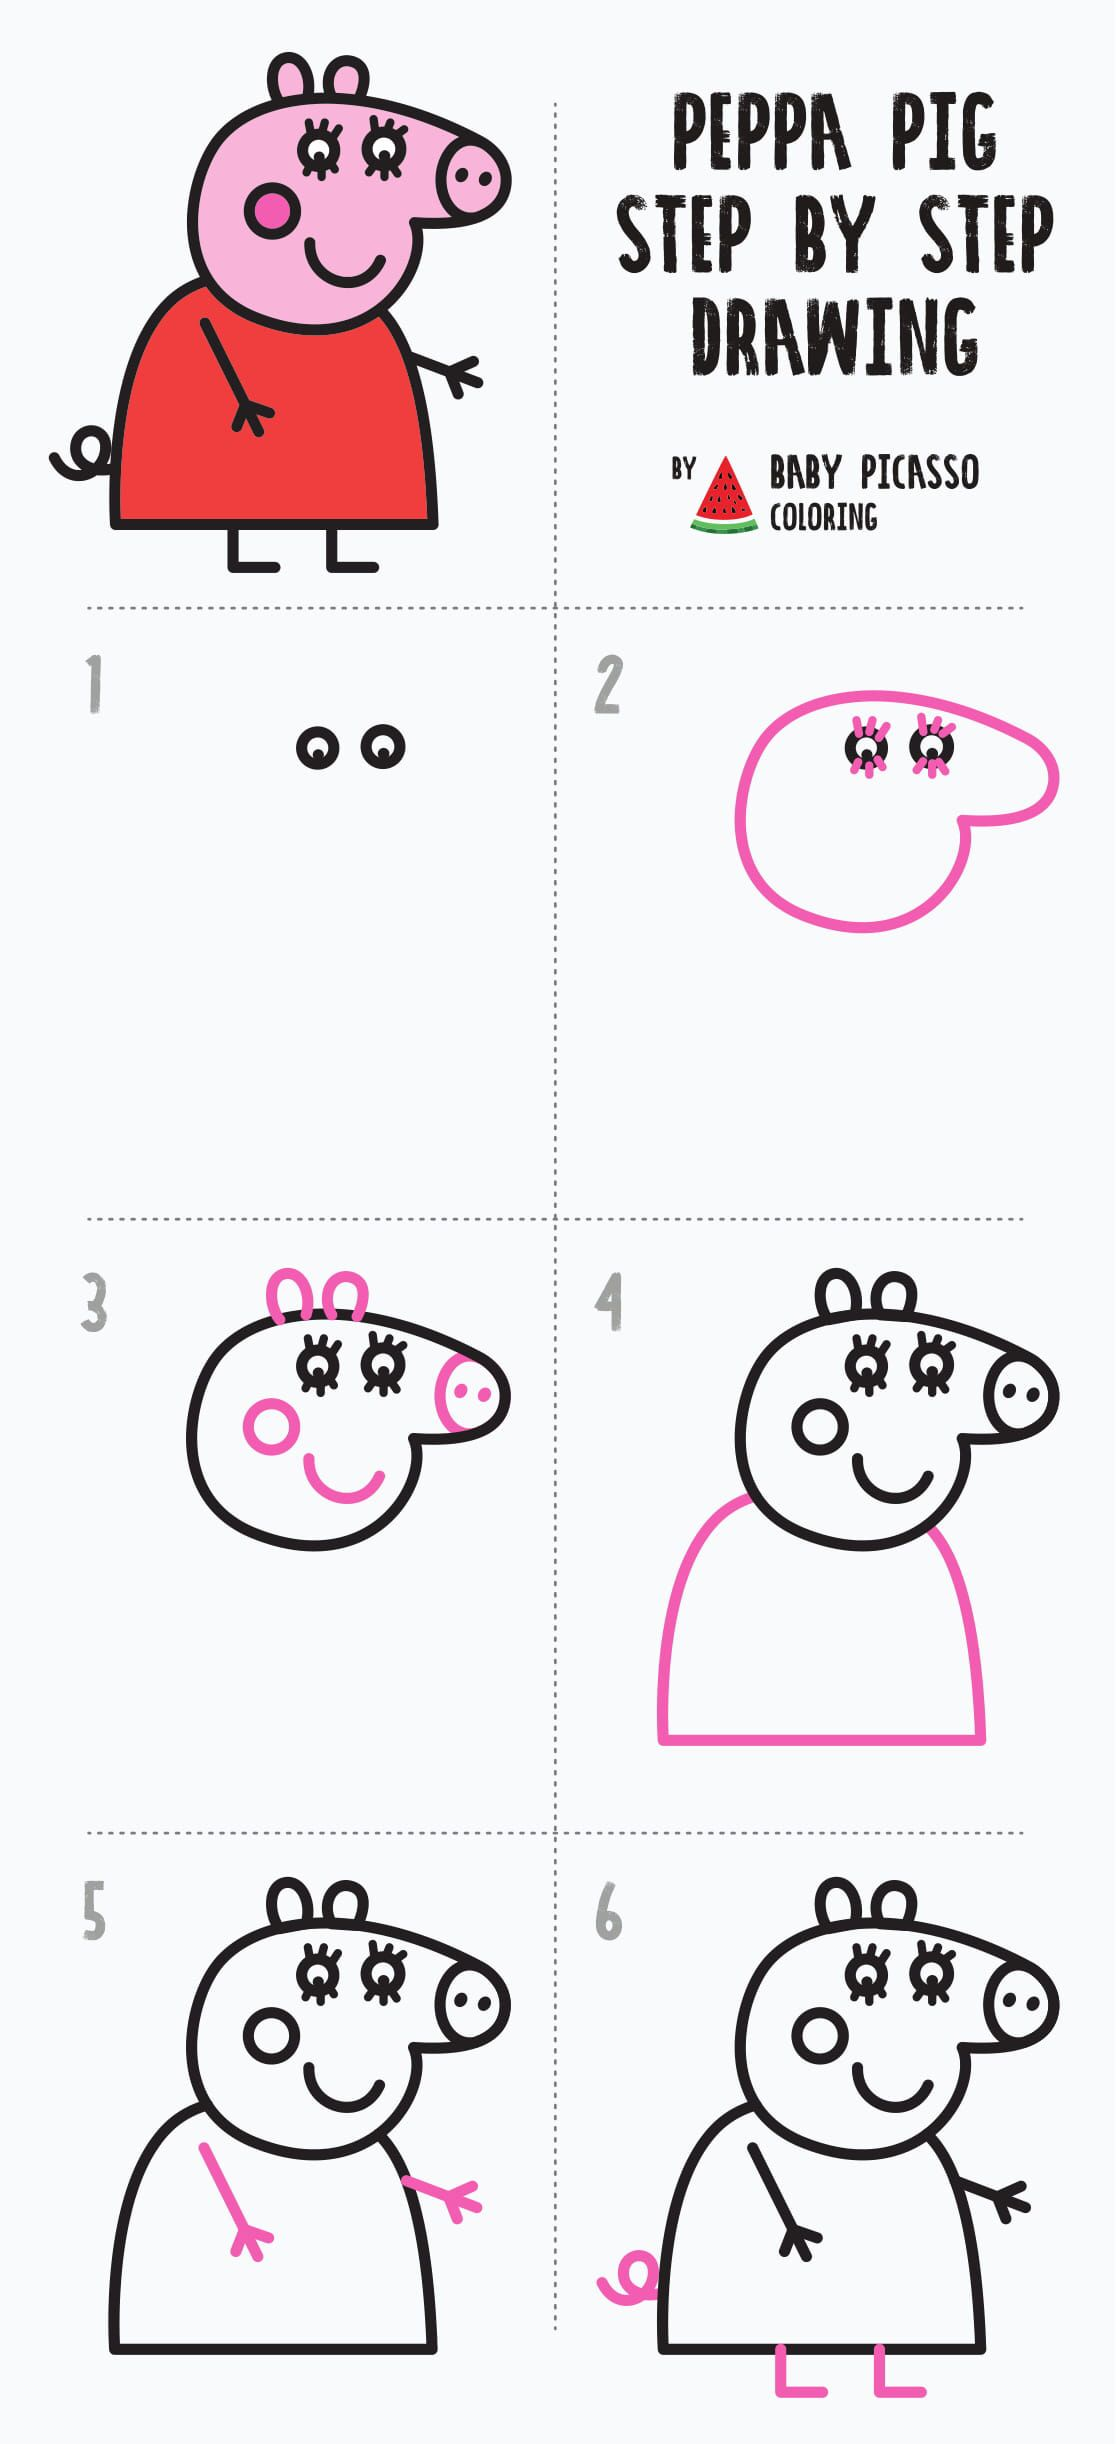 Peppa Pig Family Drawing And Coloring Pages For Kids And Toddlers Youtube Family Drawing Cute Easy Doodles Easy Drawings For Kids